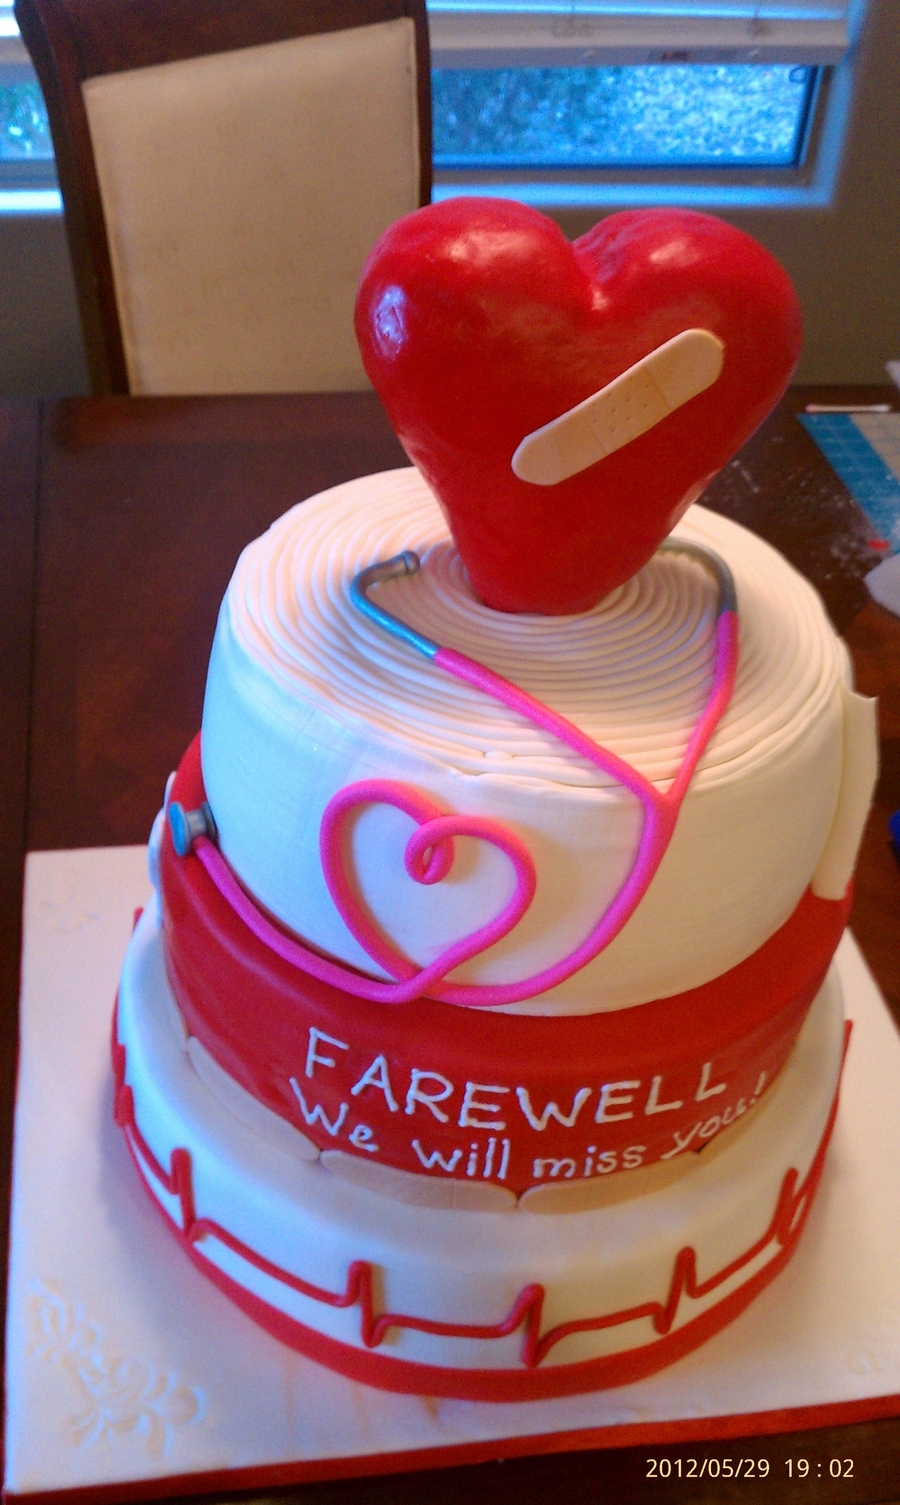 Dr. Farewell on Cake Central